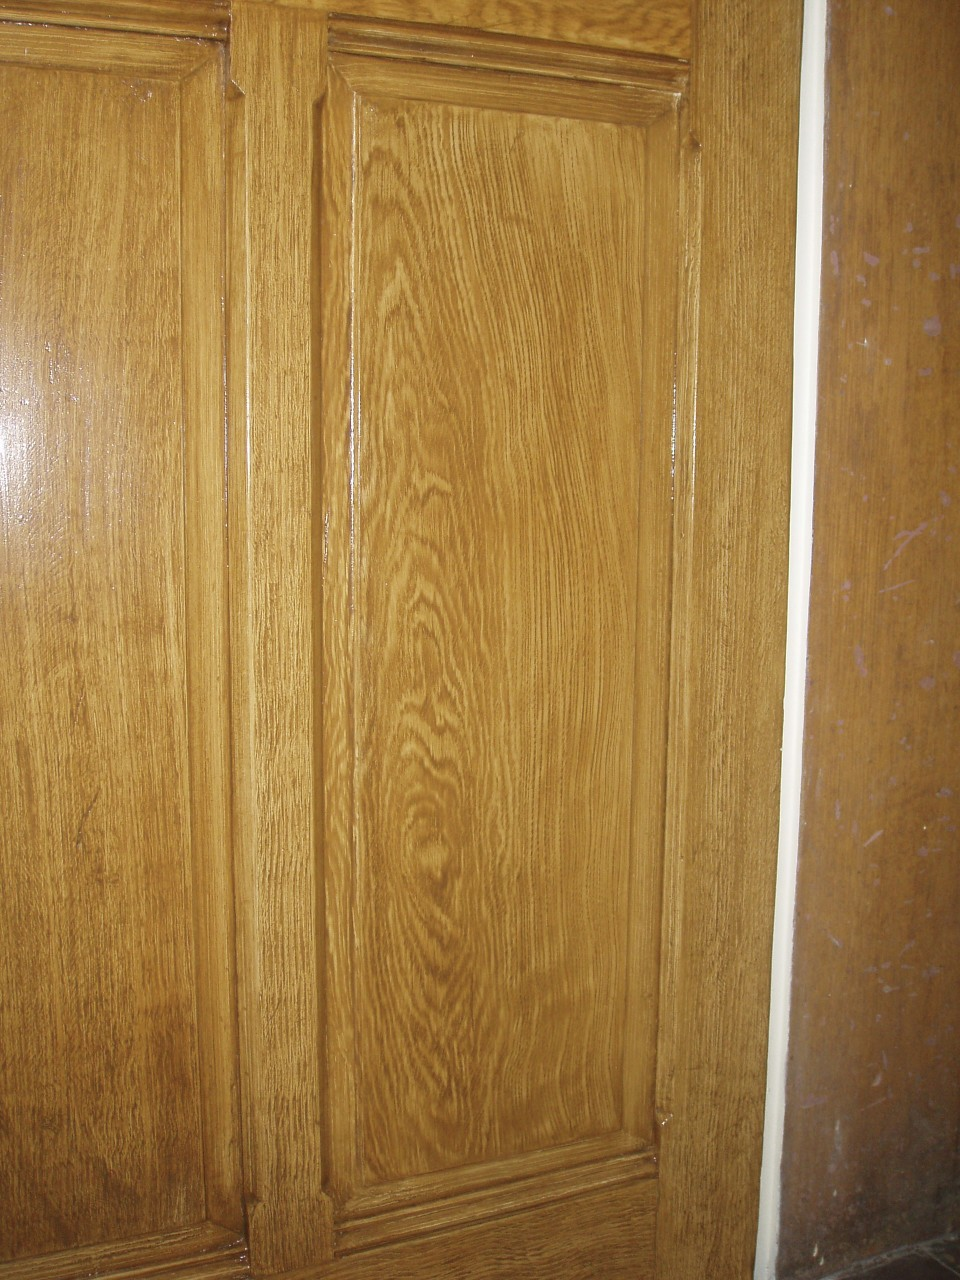 Faux Oak - after